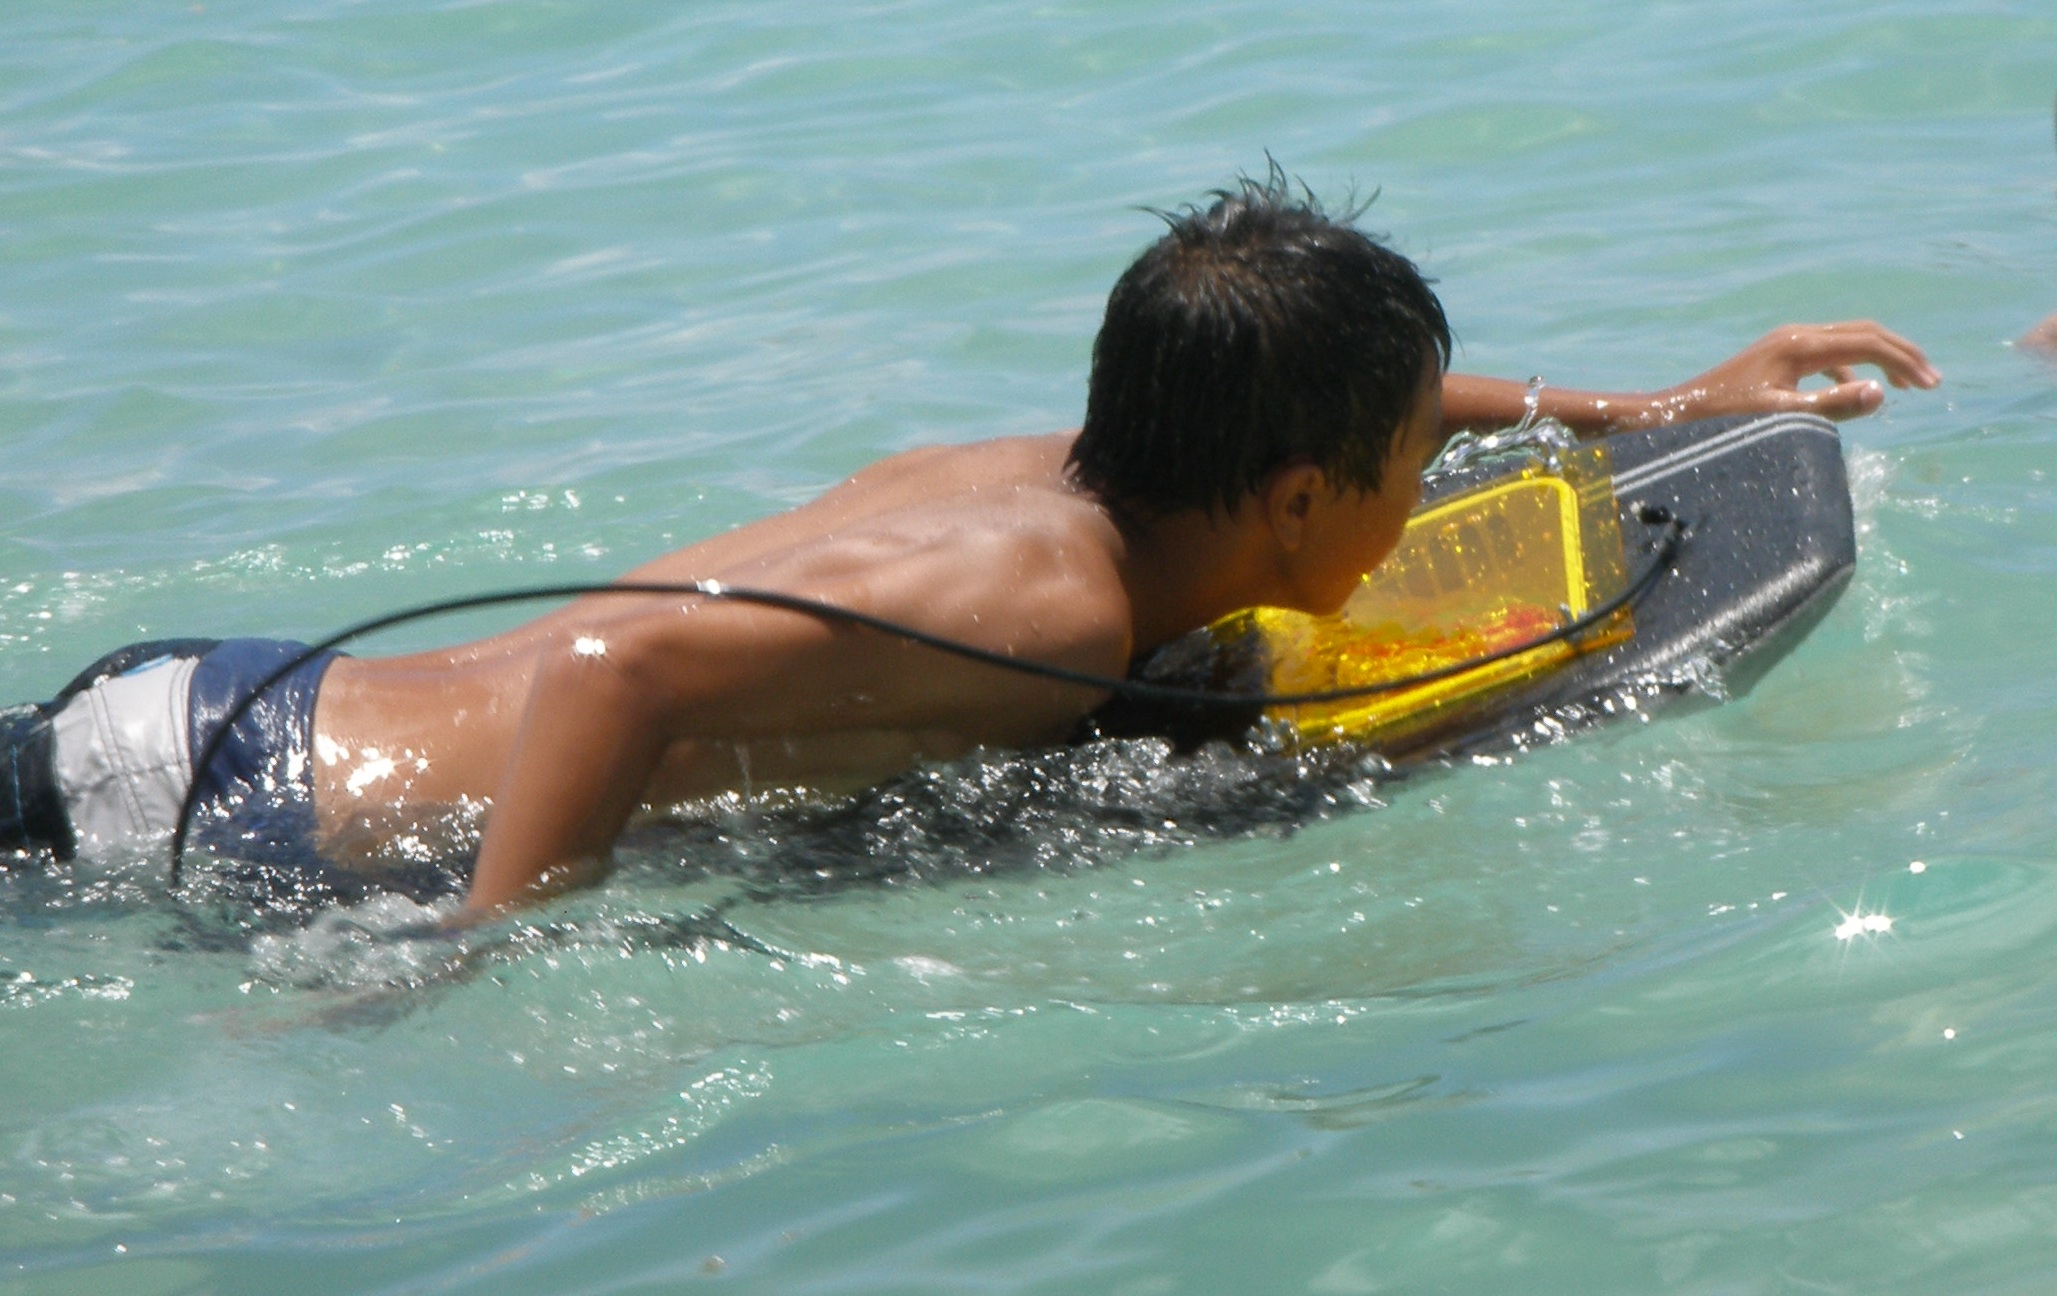 Boy surfing on photochemical reactor surfboard in Hawaii